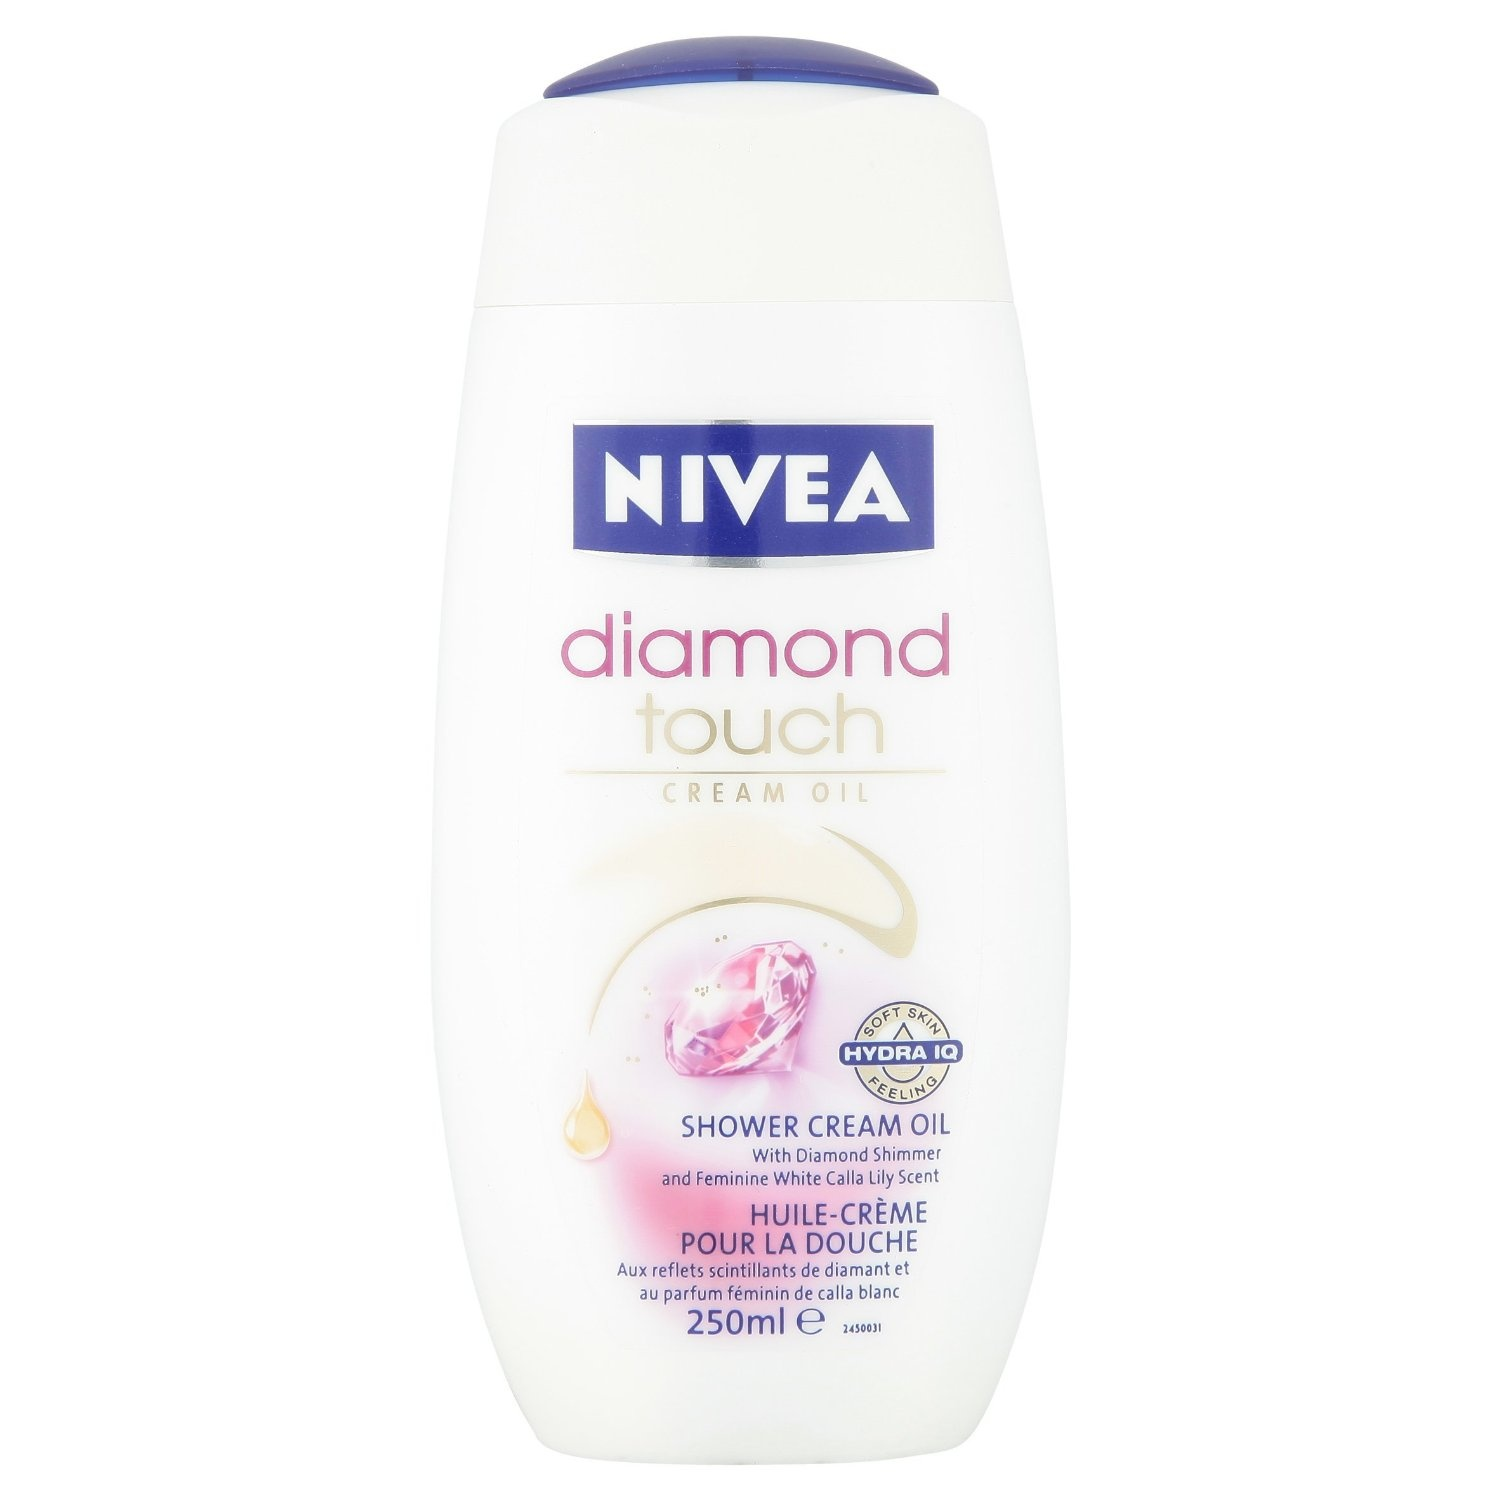 Nivea All Product Health Buy Online From Fishpondconz